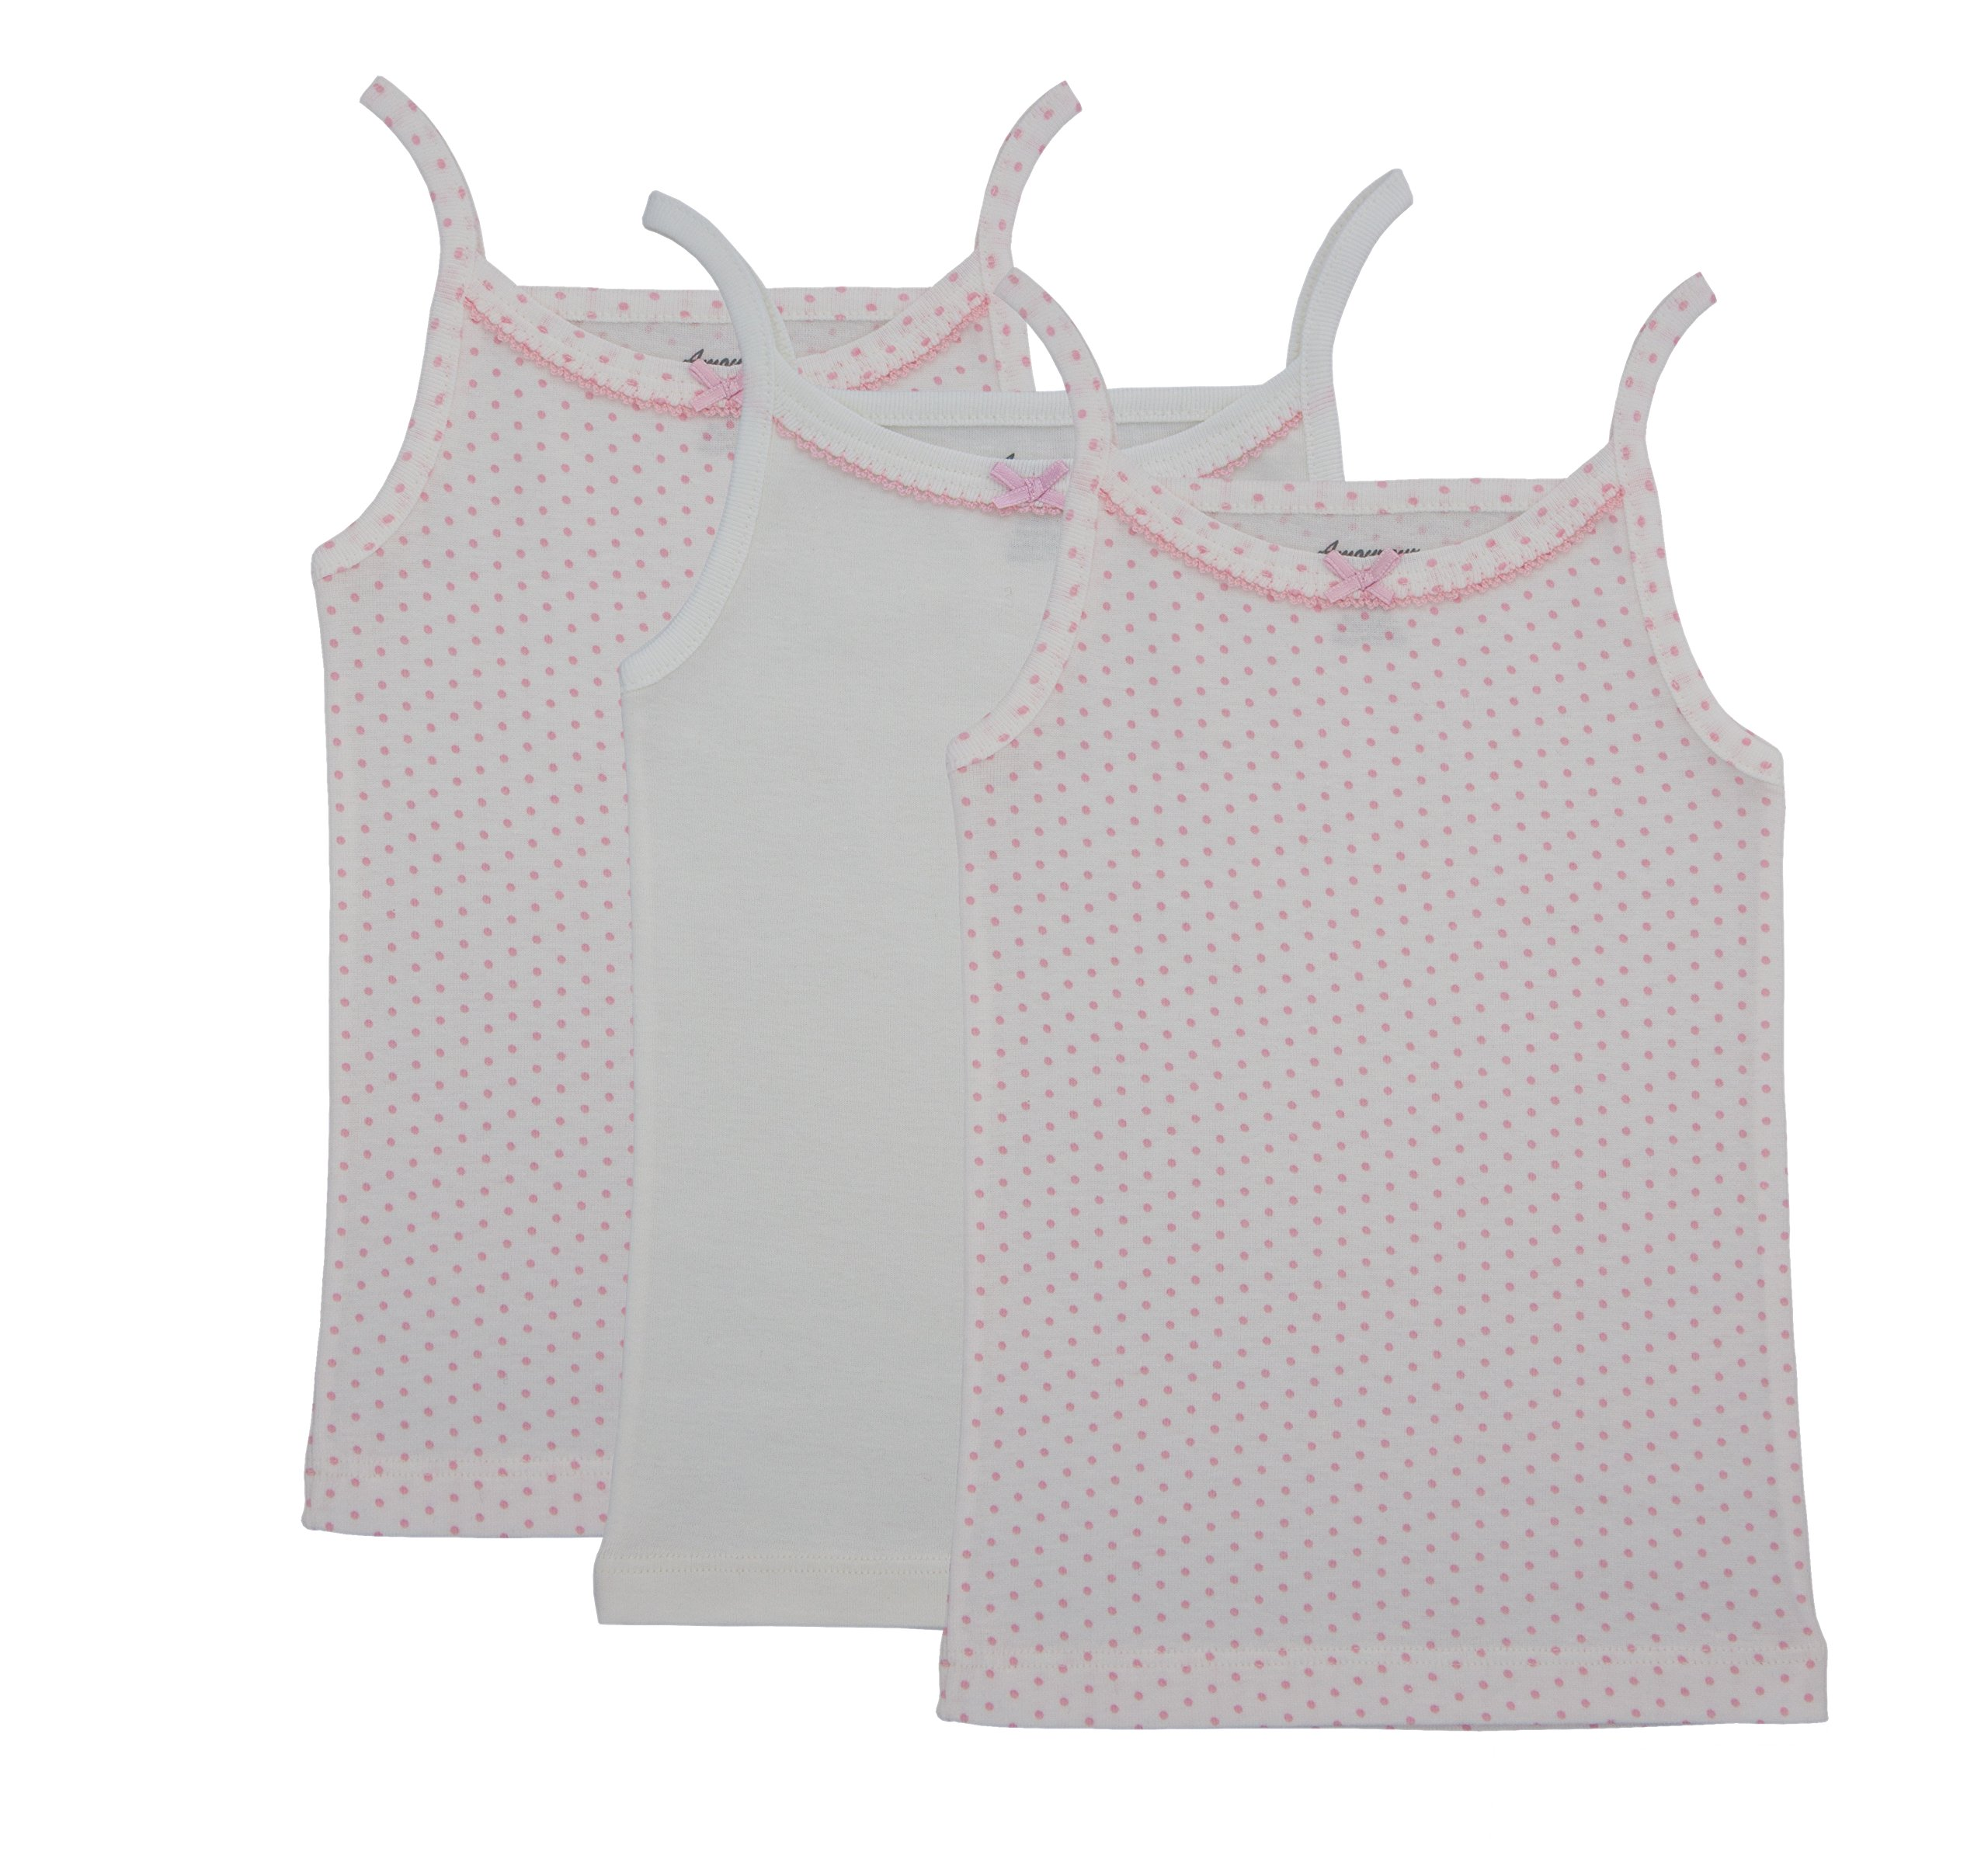 Amoureux Bebe Camisole Undershirts For Toddlers & Girls- Extra Soft Turkish Cotton Tank Tops- Pink & White Polka Dots, Size 8-9 (3 Pack)